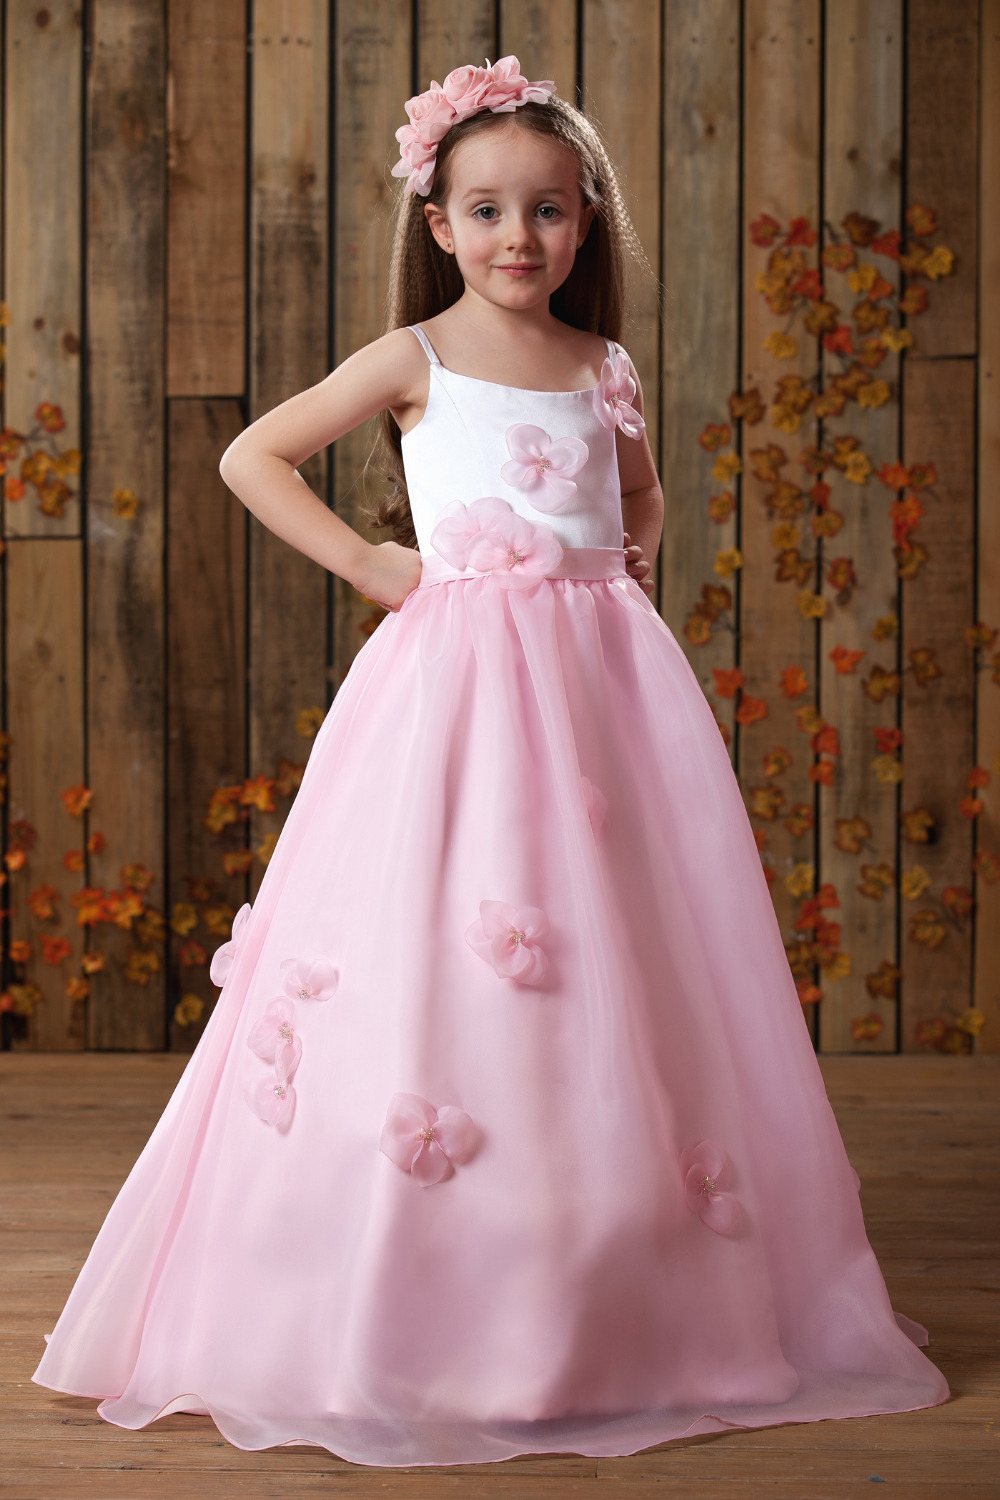 2015 beautiful princess dress royal loading female child wedding 2015 beautiful princess dress royal loading female child wedding female child bridesmaid dress in flower girl dresses from weddings events on ombrellifo Image collections